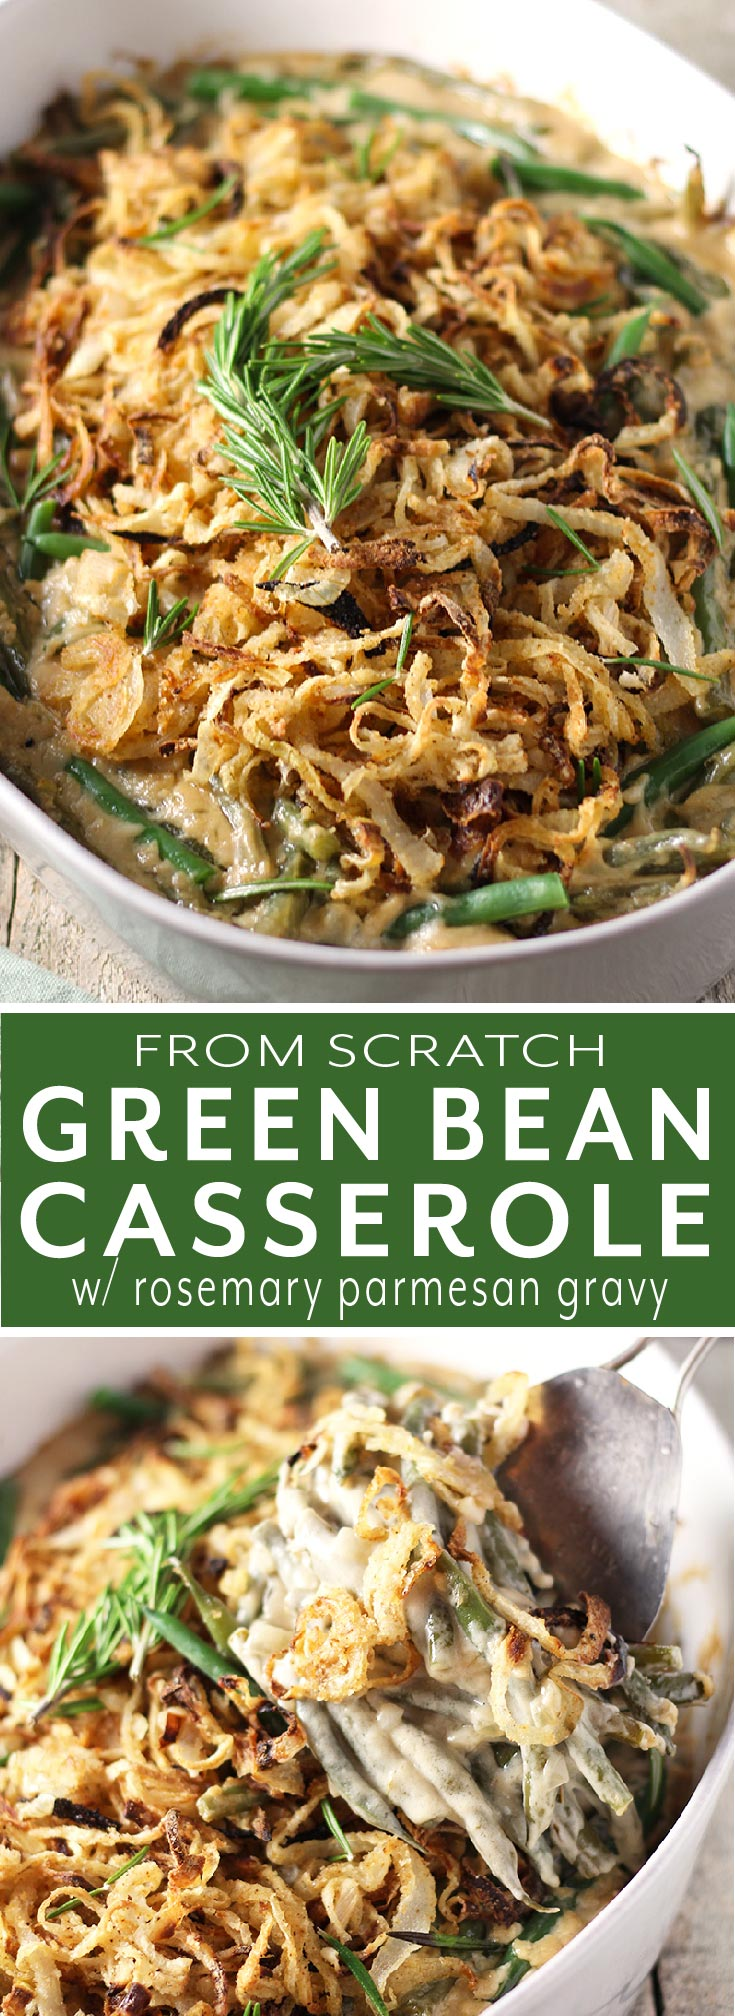 Homemade green bean casserole made without anything from a can! Fresh green beans in rosemary parmesan gravy topped with crispy baked french onions. You'll never want another green bean casserole recipe!